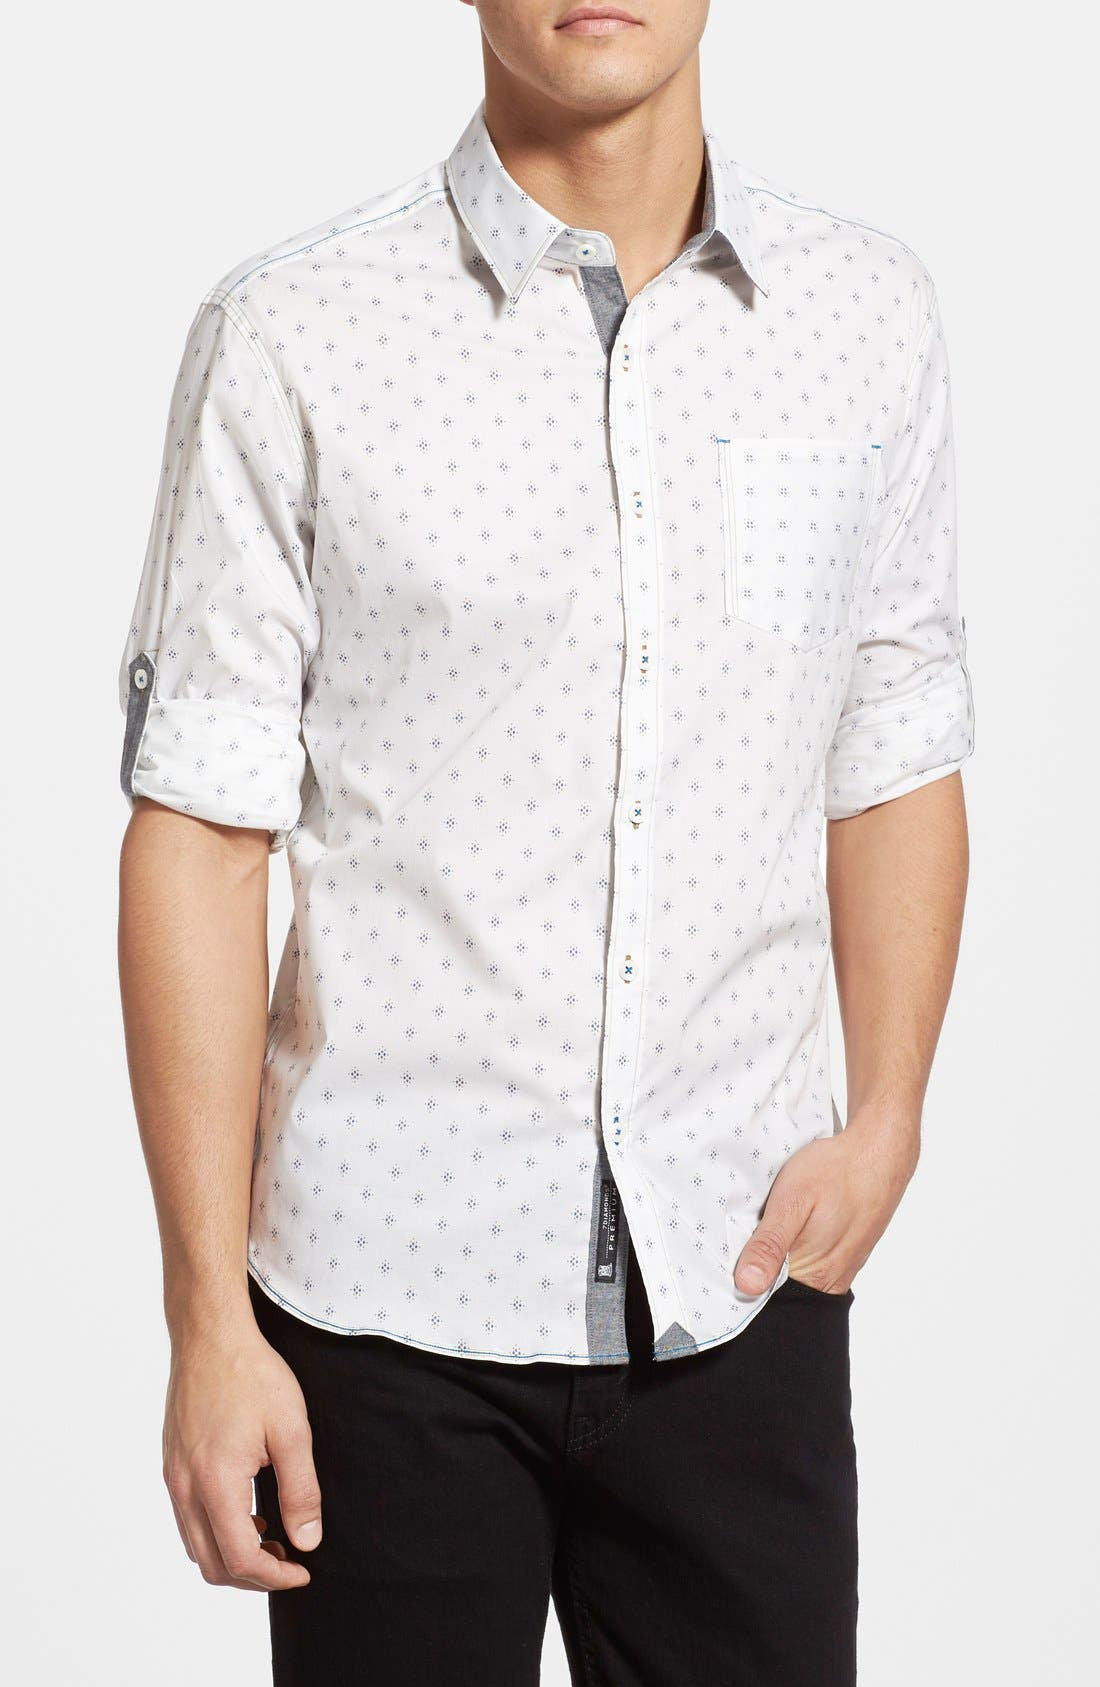 'Reflector' Trim Fit Woven Shirt,                         Main,                         color, White